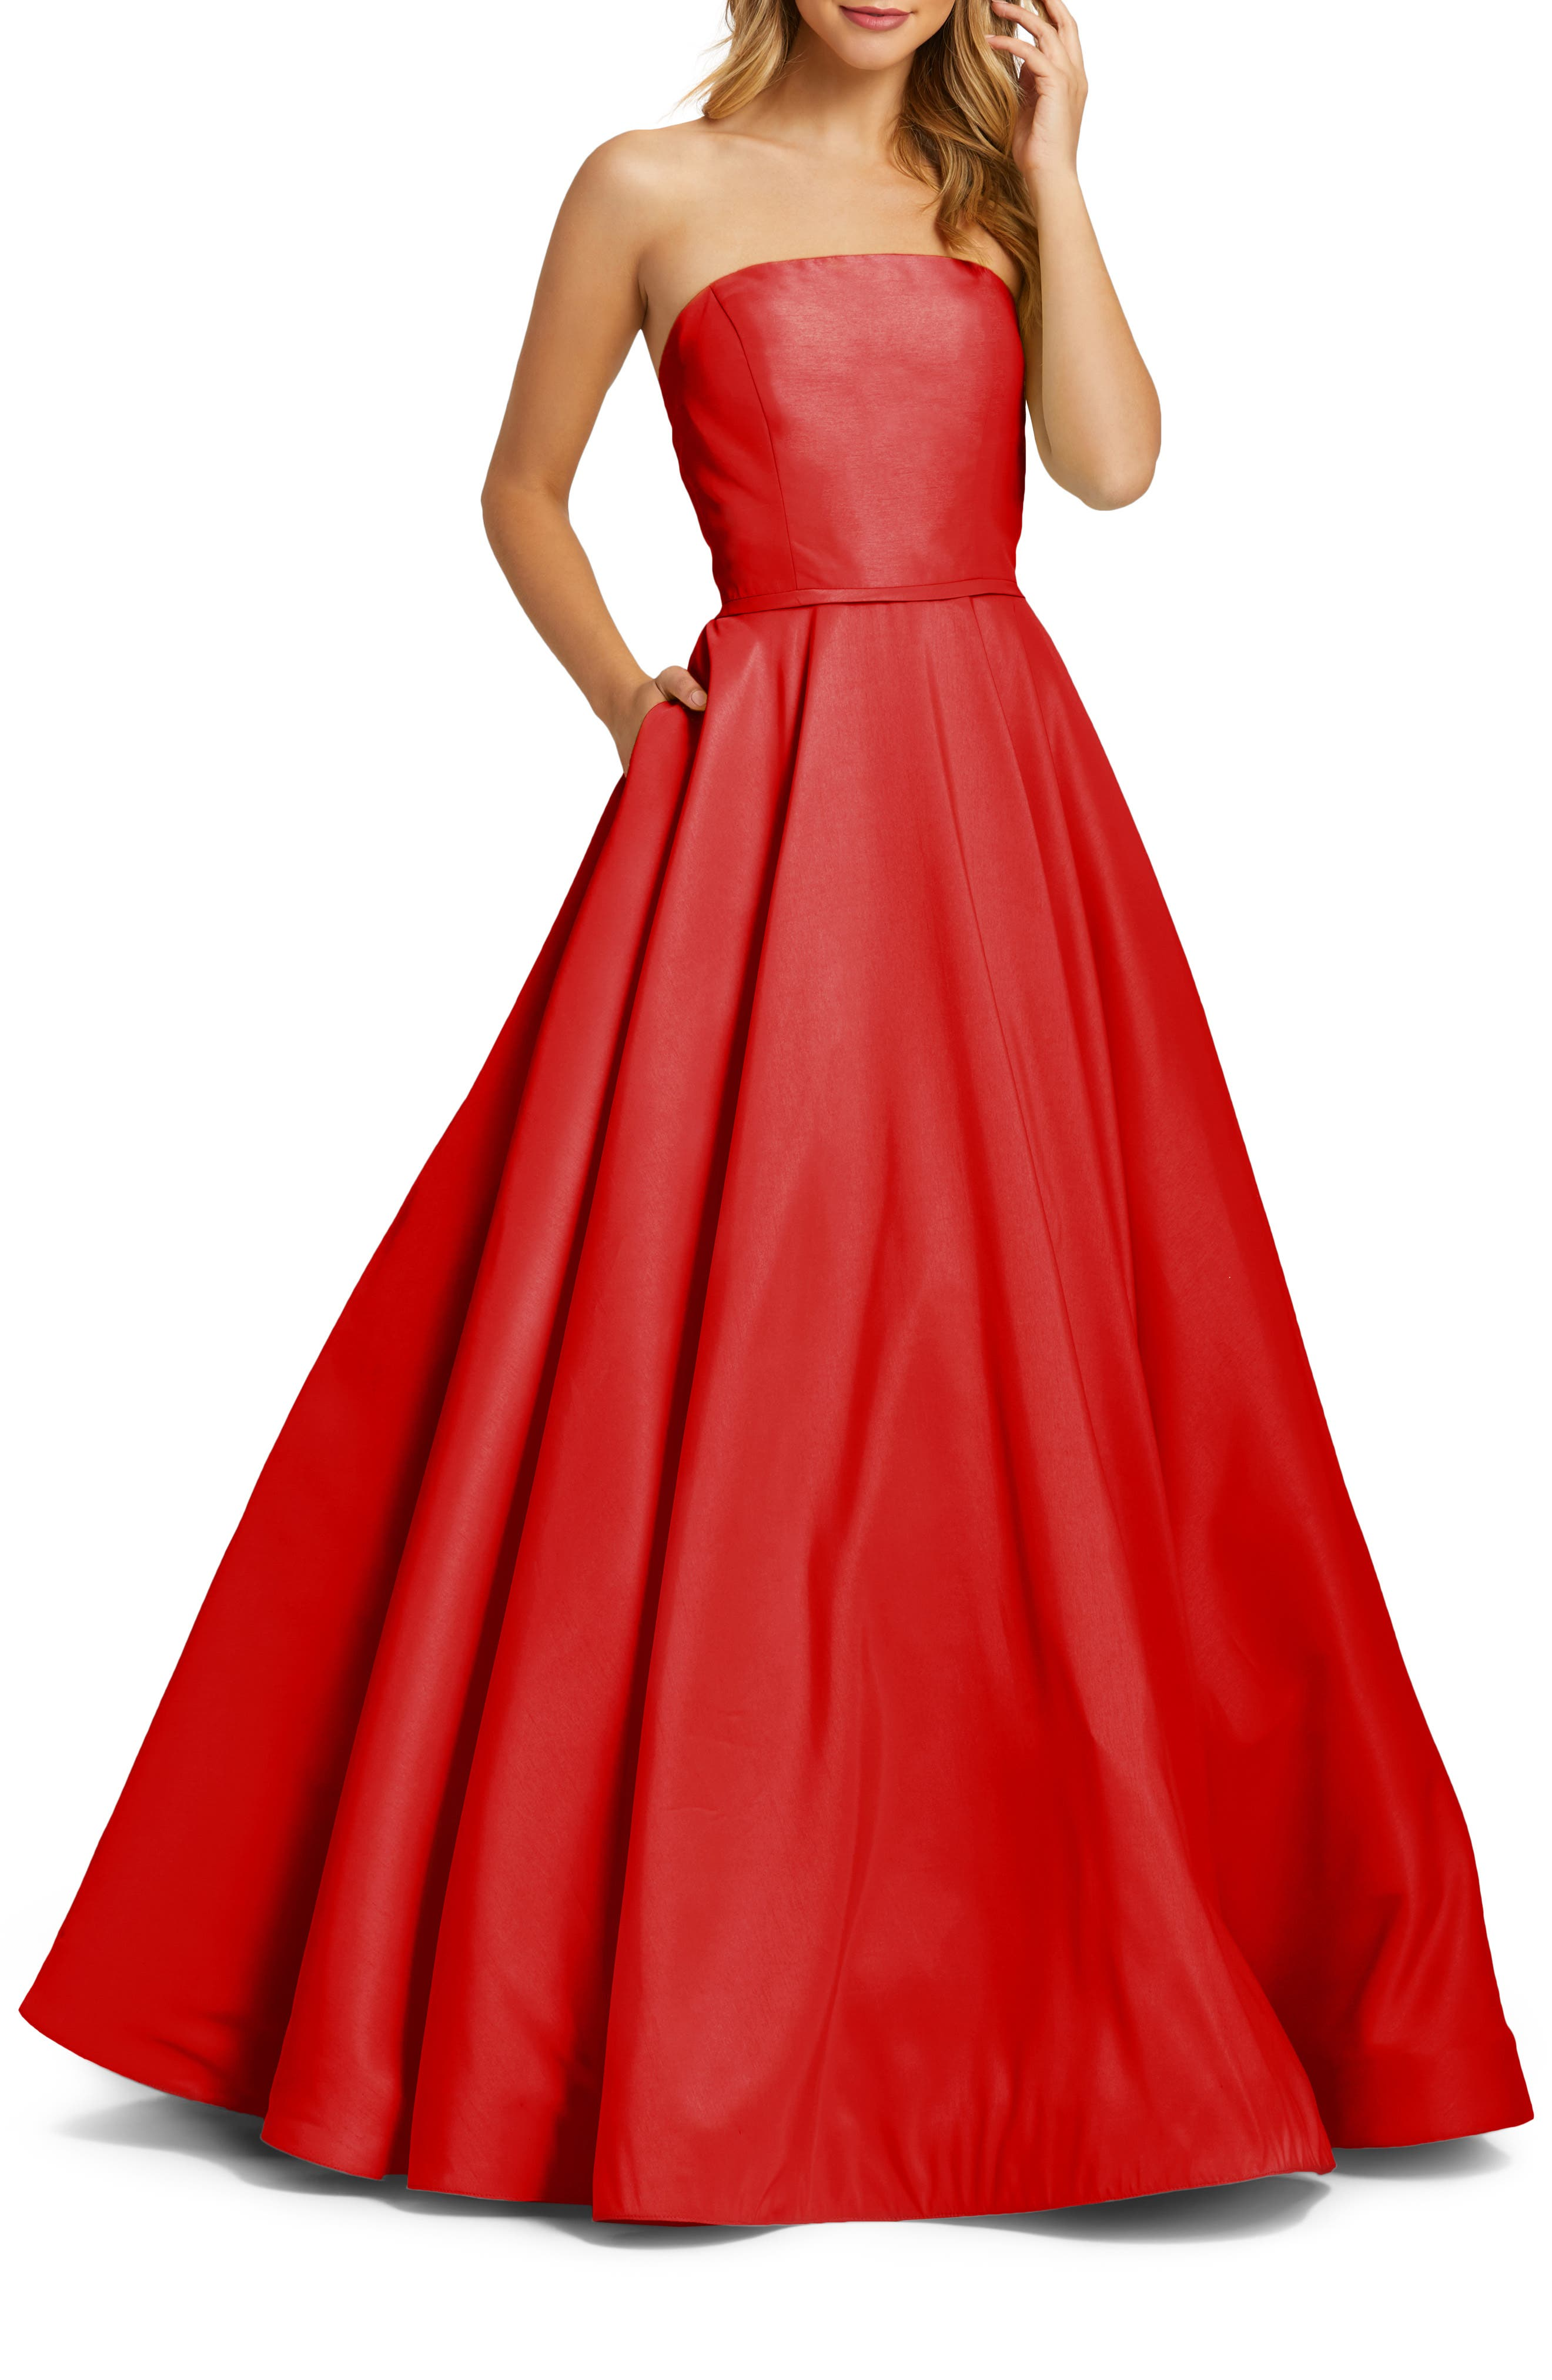 80s Dress Styles | Party, Prom, Formal Womens Ieena For MAC Duggal Strapless Ballgown Size 16 - Red $398.00 AT vintagedancer.com